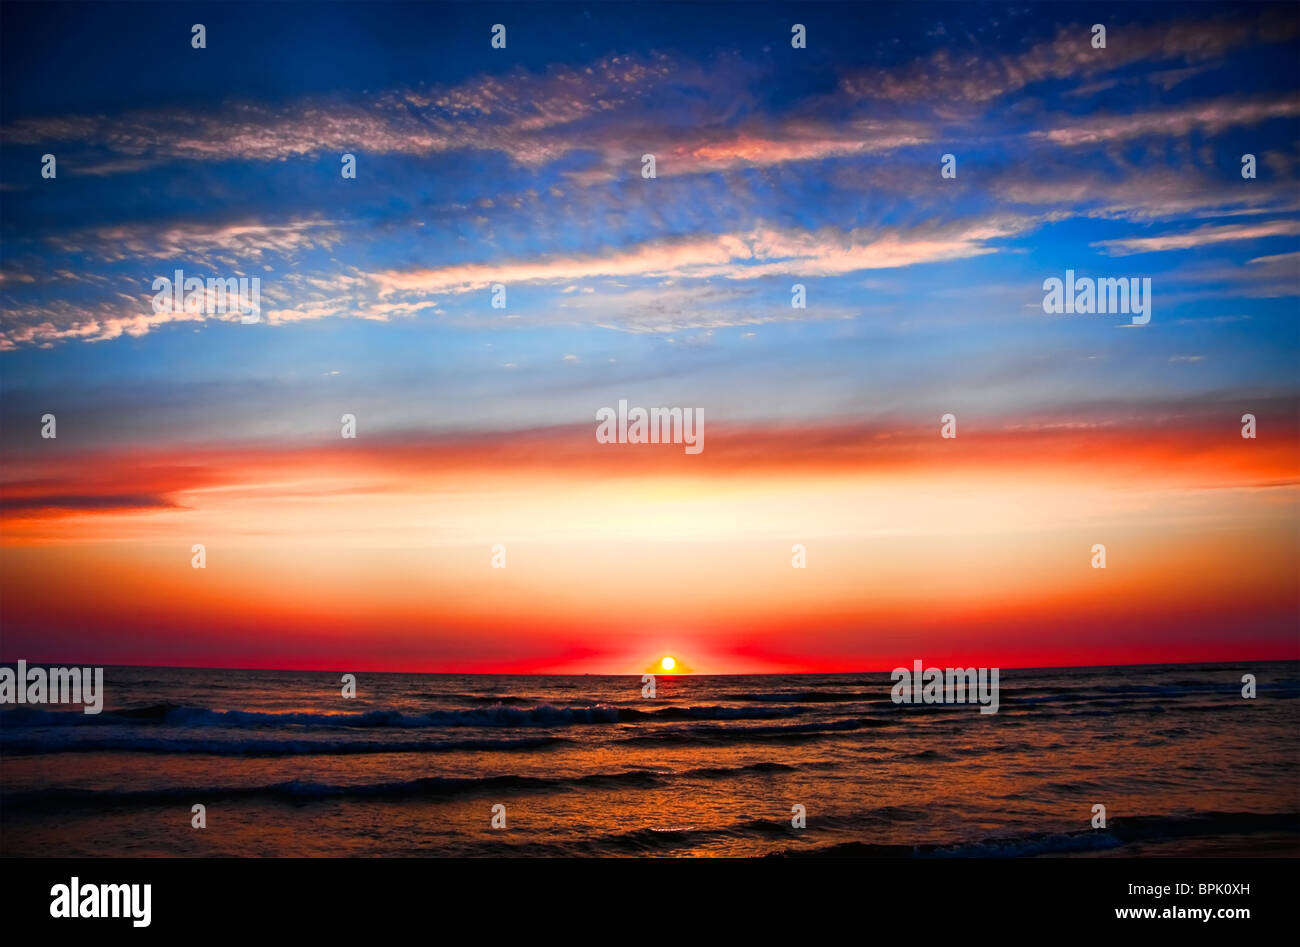 sunset at Sea - Stock Image